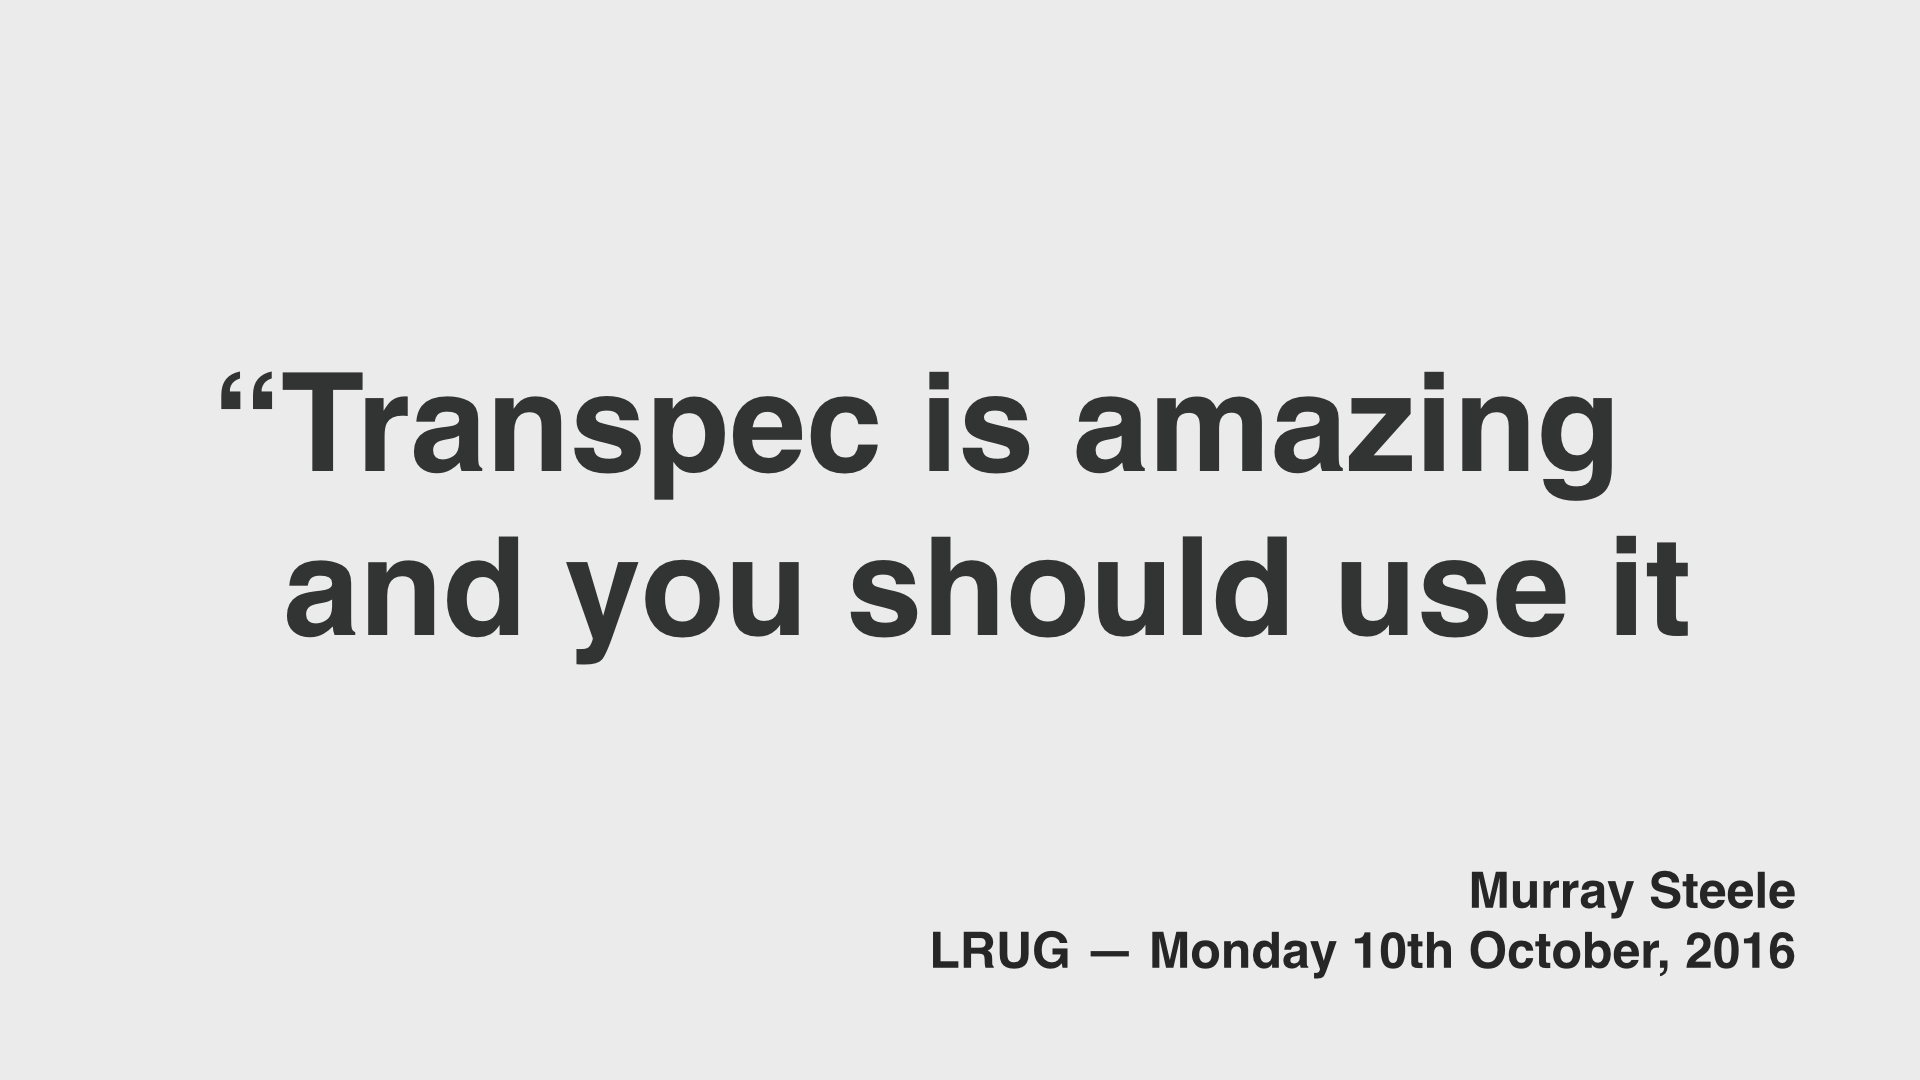 A quote - text: Transpec is amazing and you should use it - LRUG — Monday 10th October, 2016